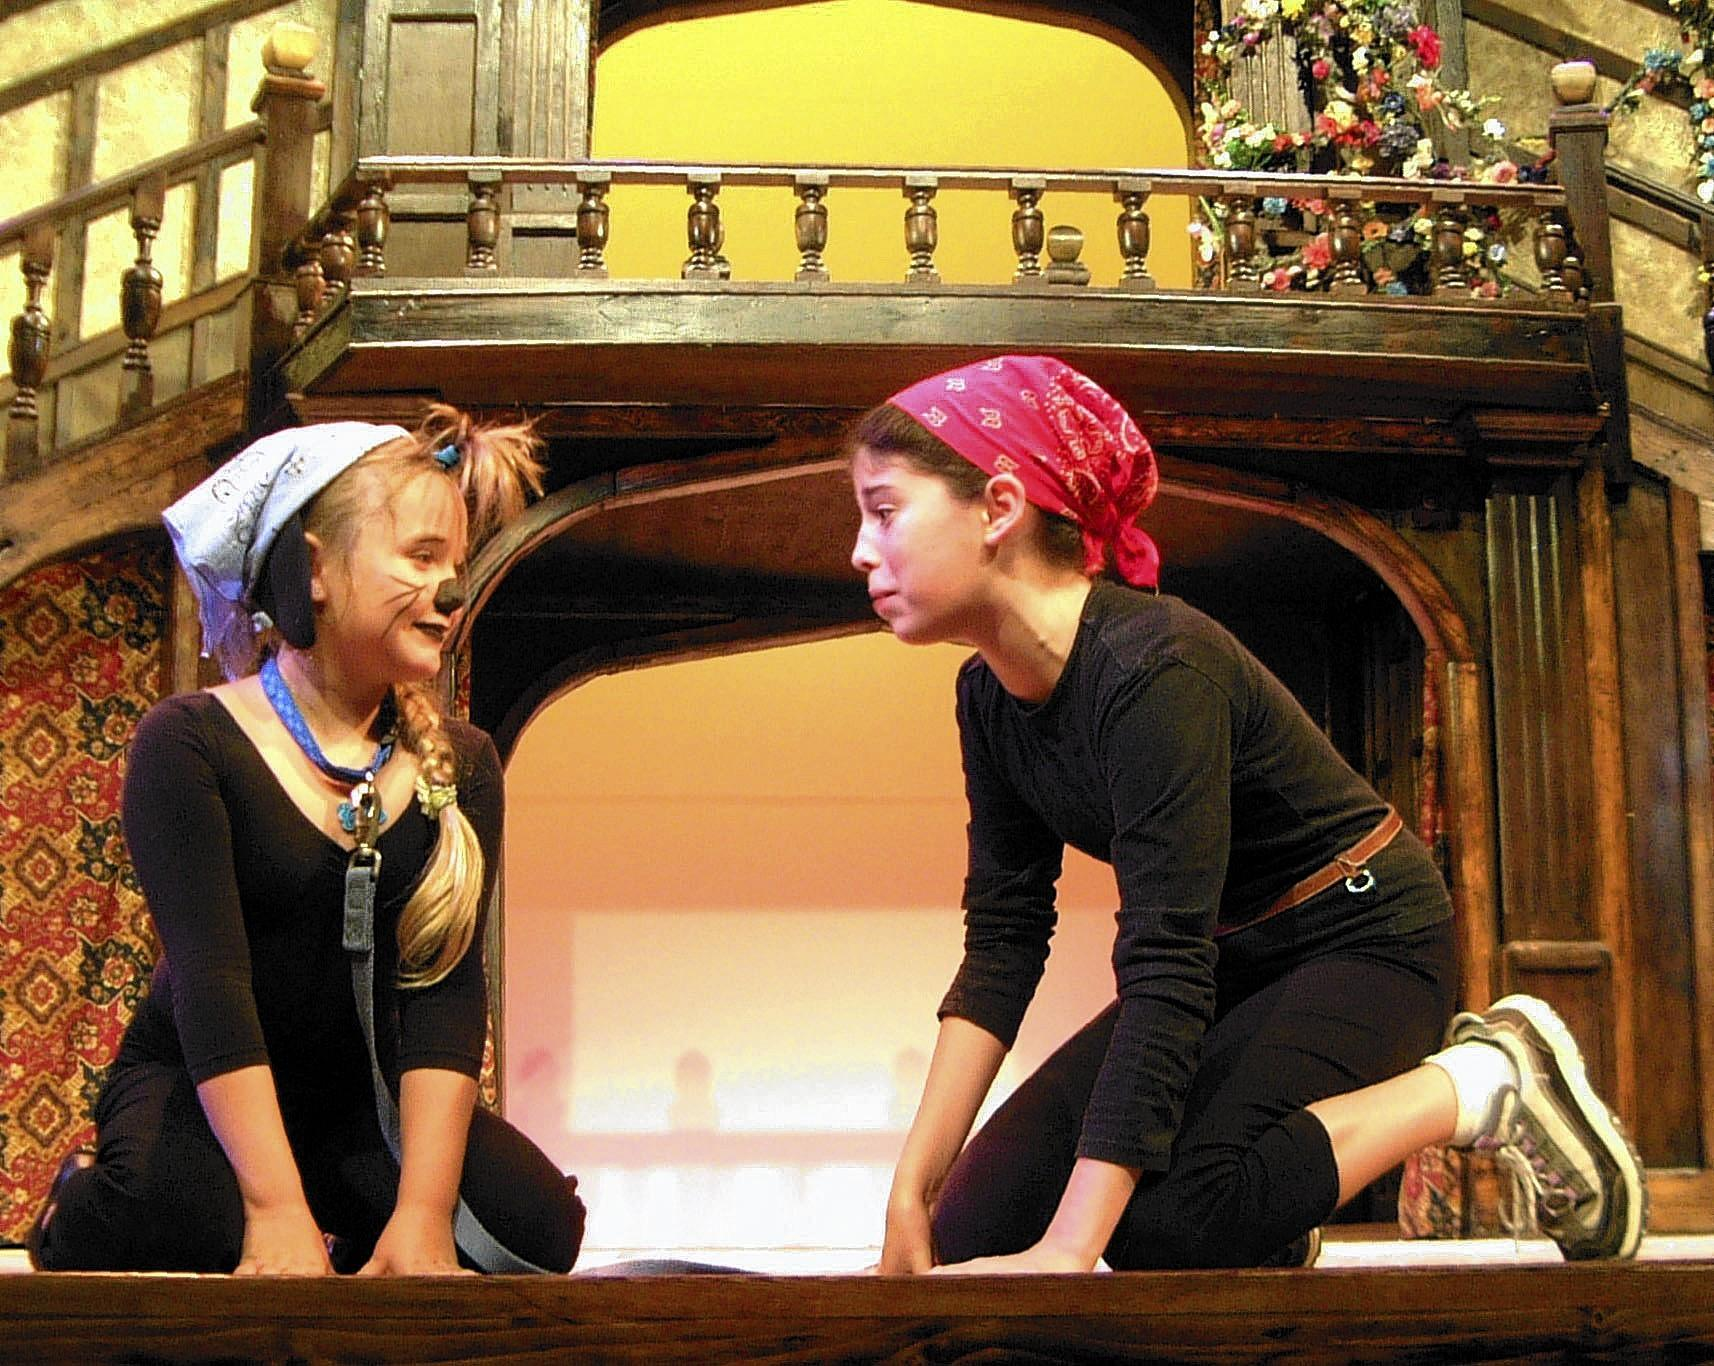 The Virginia Shakespeare Festival's Camp Shakespeare summer program gives teens ages 10-17 the opportunity to learn about and perform Shakespeare.